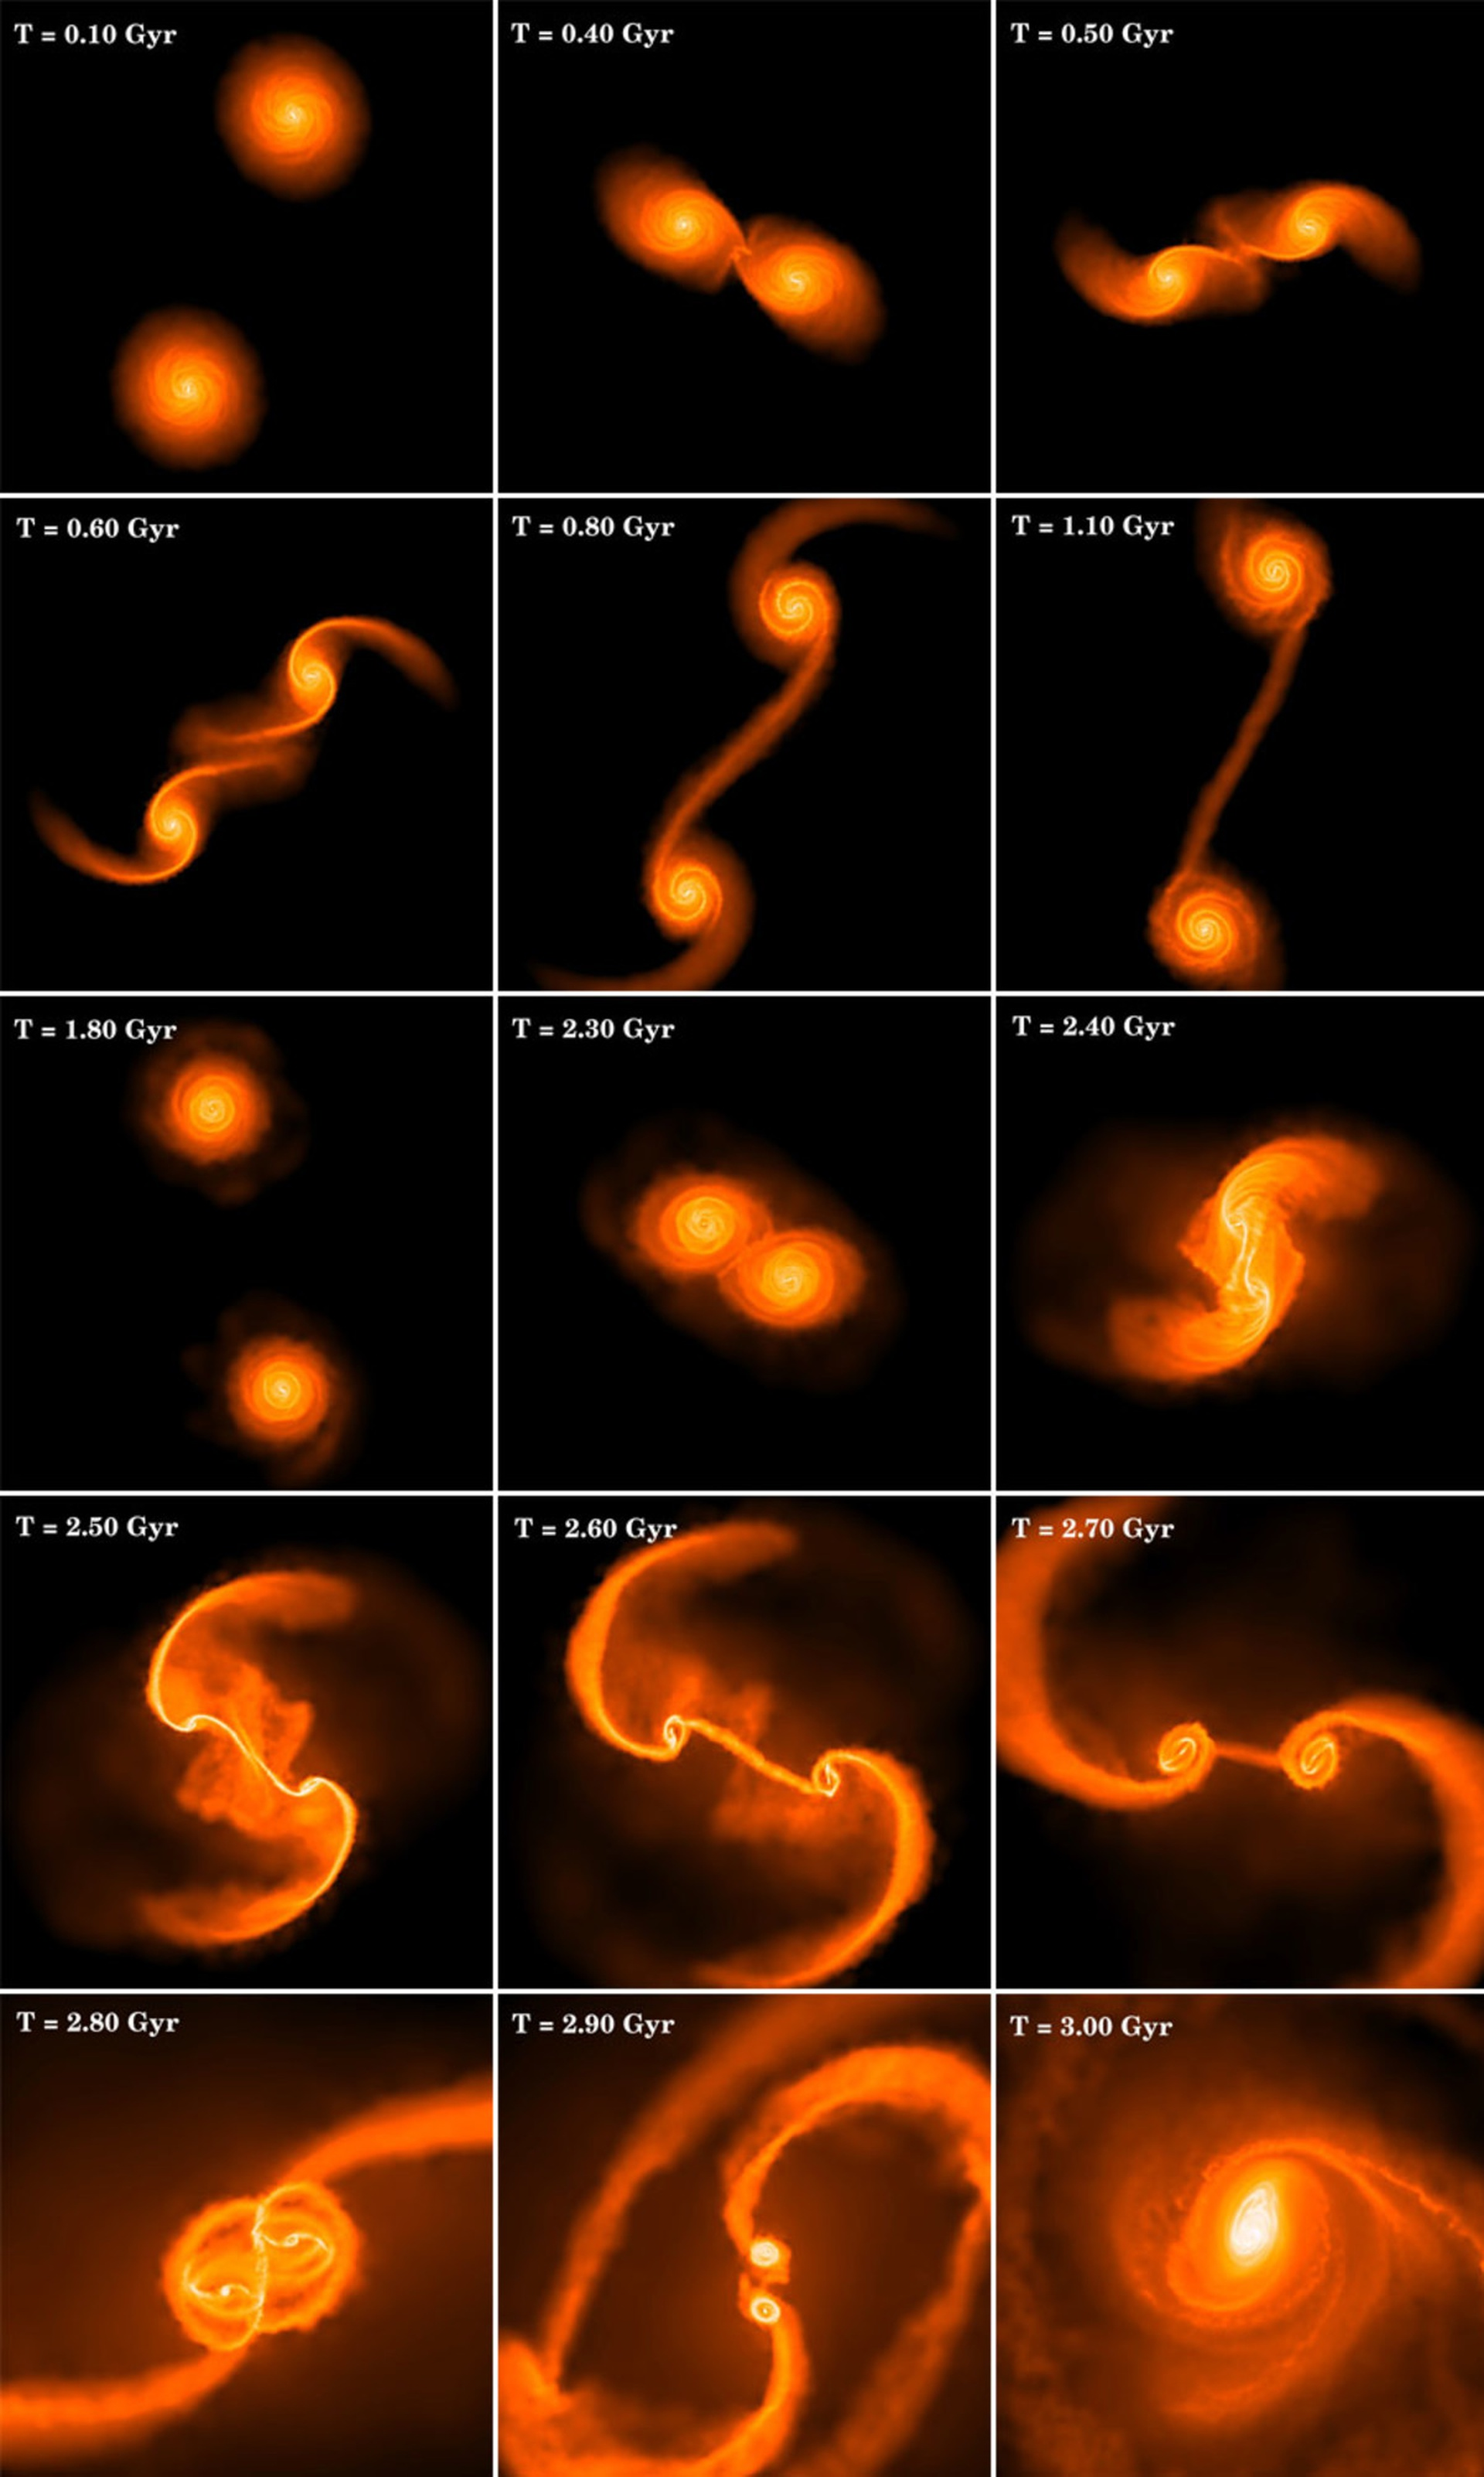 The panel illustrates the complexity of dynamical evolution in a typical collision between two equal-mass disk galaxies. The simulation follows dark matter, stars, gas, and supermassive black holes, but only the gas component is visualized. Brighter colors indicate regions of higher gas density and the time corresponding to each snapshot is given by the labels.  The first 10 panel images measure 100 kpc on a side, roughly five times the diameter of the visible part of the Milky Way galaxy. The next five panels represent successive zooms on the central region. The final frame shows the inner 300 pc of the nuclear region at the end of the simulation.  On two accompanying videos -- here and here -- during the interaction, violent tidal forces tear the galactic disks apart, generating spectacular tidal tails, plumes and prominent bridges of material connecting the two galaxies. The ultimate outcome of a series of increasingly close encounters is the inevitable merger of the disk galaxies into a single structure and the formation of a nuclear disk as shown in the last panel.  The simulated nuclear disks have masses of approximately a billion solar masses and exhibit prominent non-axisymmetric features known to produce strong gas inflows. The gas inflows are likely responsible for fueling the central black hole, but even higher resolution will be needed to study this process in detail.  Nevertheless, the simulations carried out by Kazantzidis and his collaborators provide the first direct evidence that gas originally in galaxies separated by hundreds of kiloparsecs is collected to sub-parsec scales simply as a result of the dynamics and hydrodynamics involved in the merger process.